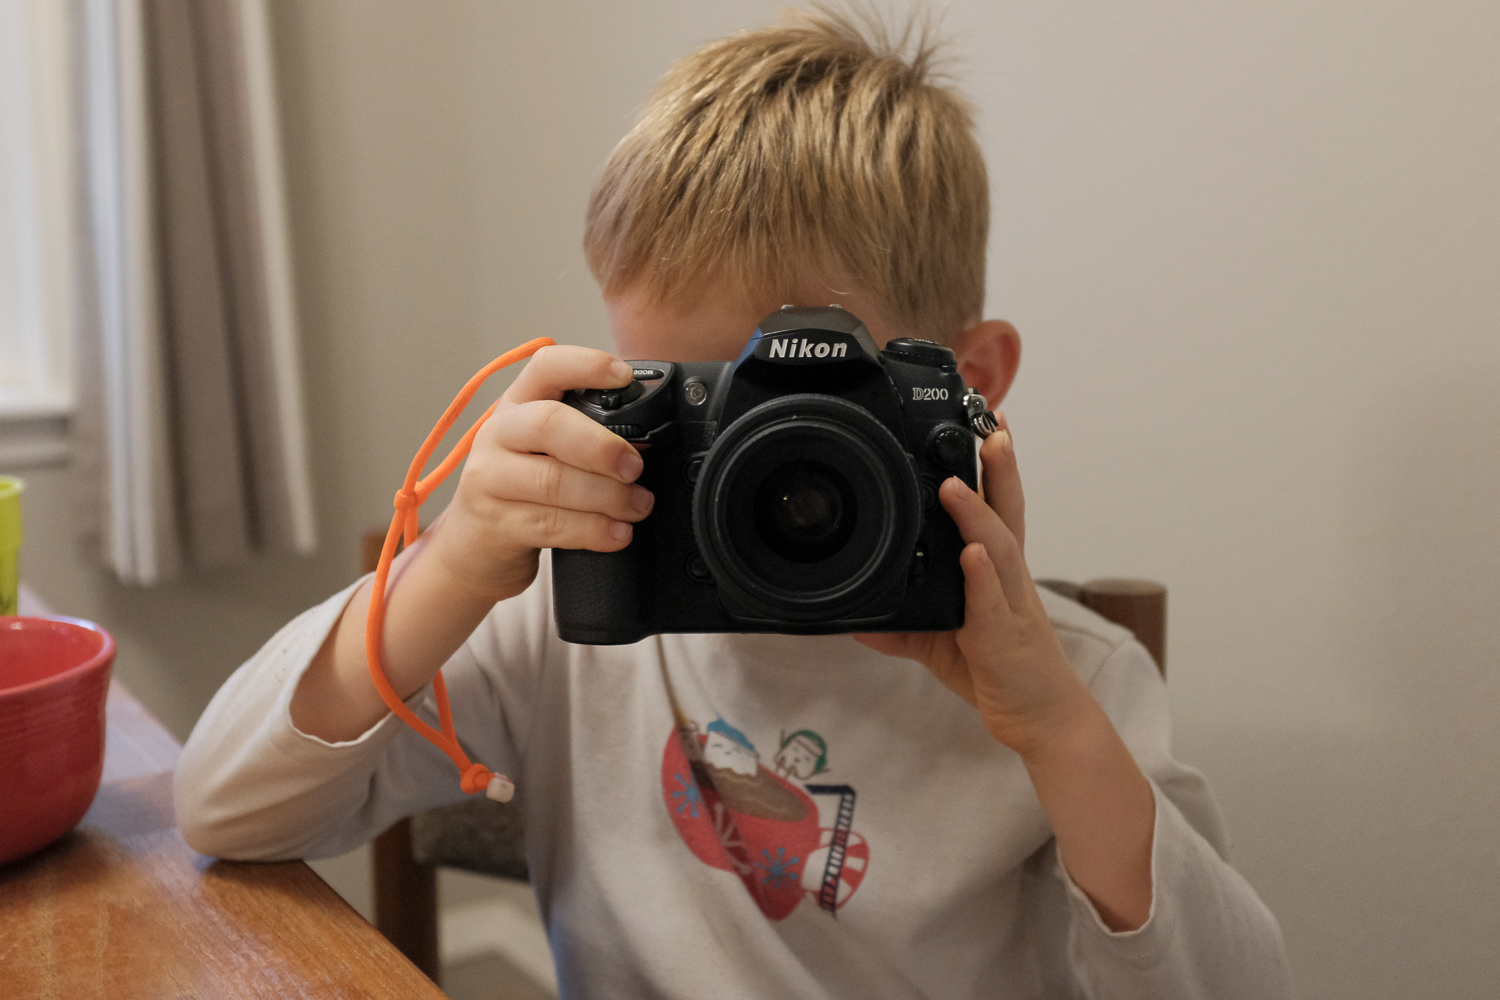 https://i2.wp.com/digital-photography-school.com/wp-content/uploads/2018/10/how-to-get-children-interested-in-photography-d200.jpg?resize=1500%2C1000&ssl=1